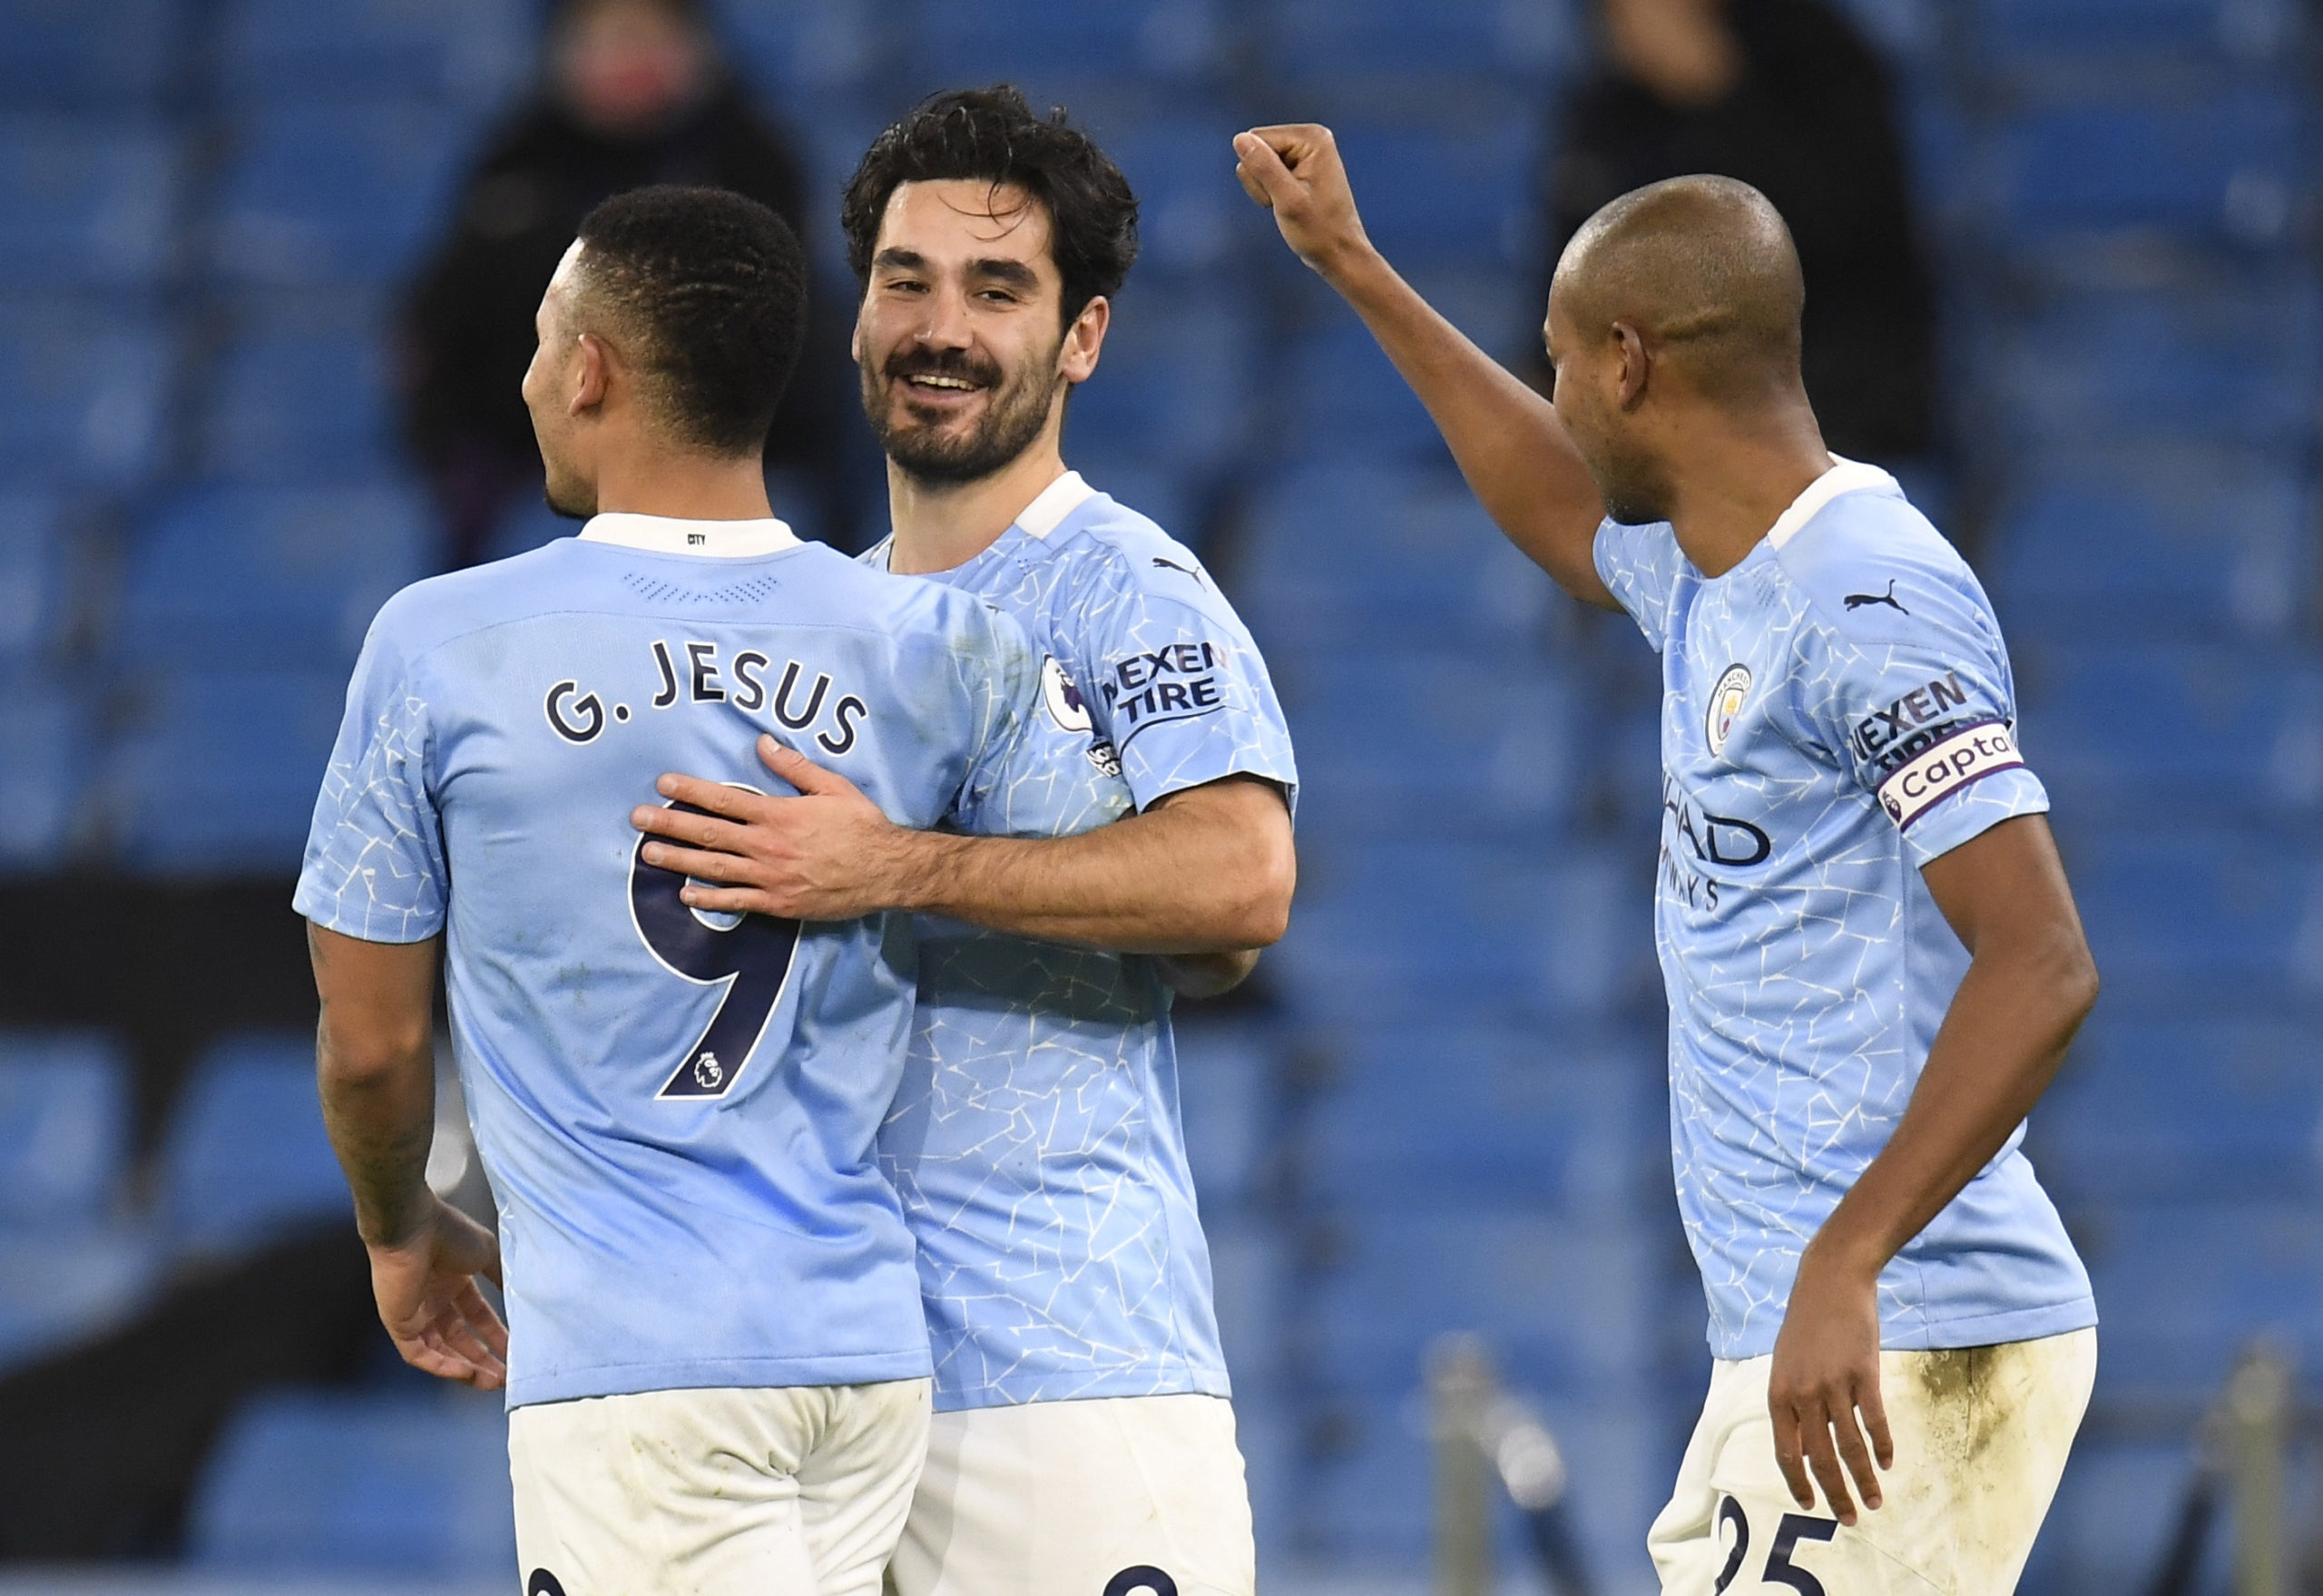 How Jesus' return impacted Gündogan's FPL output in rotated Man City side